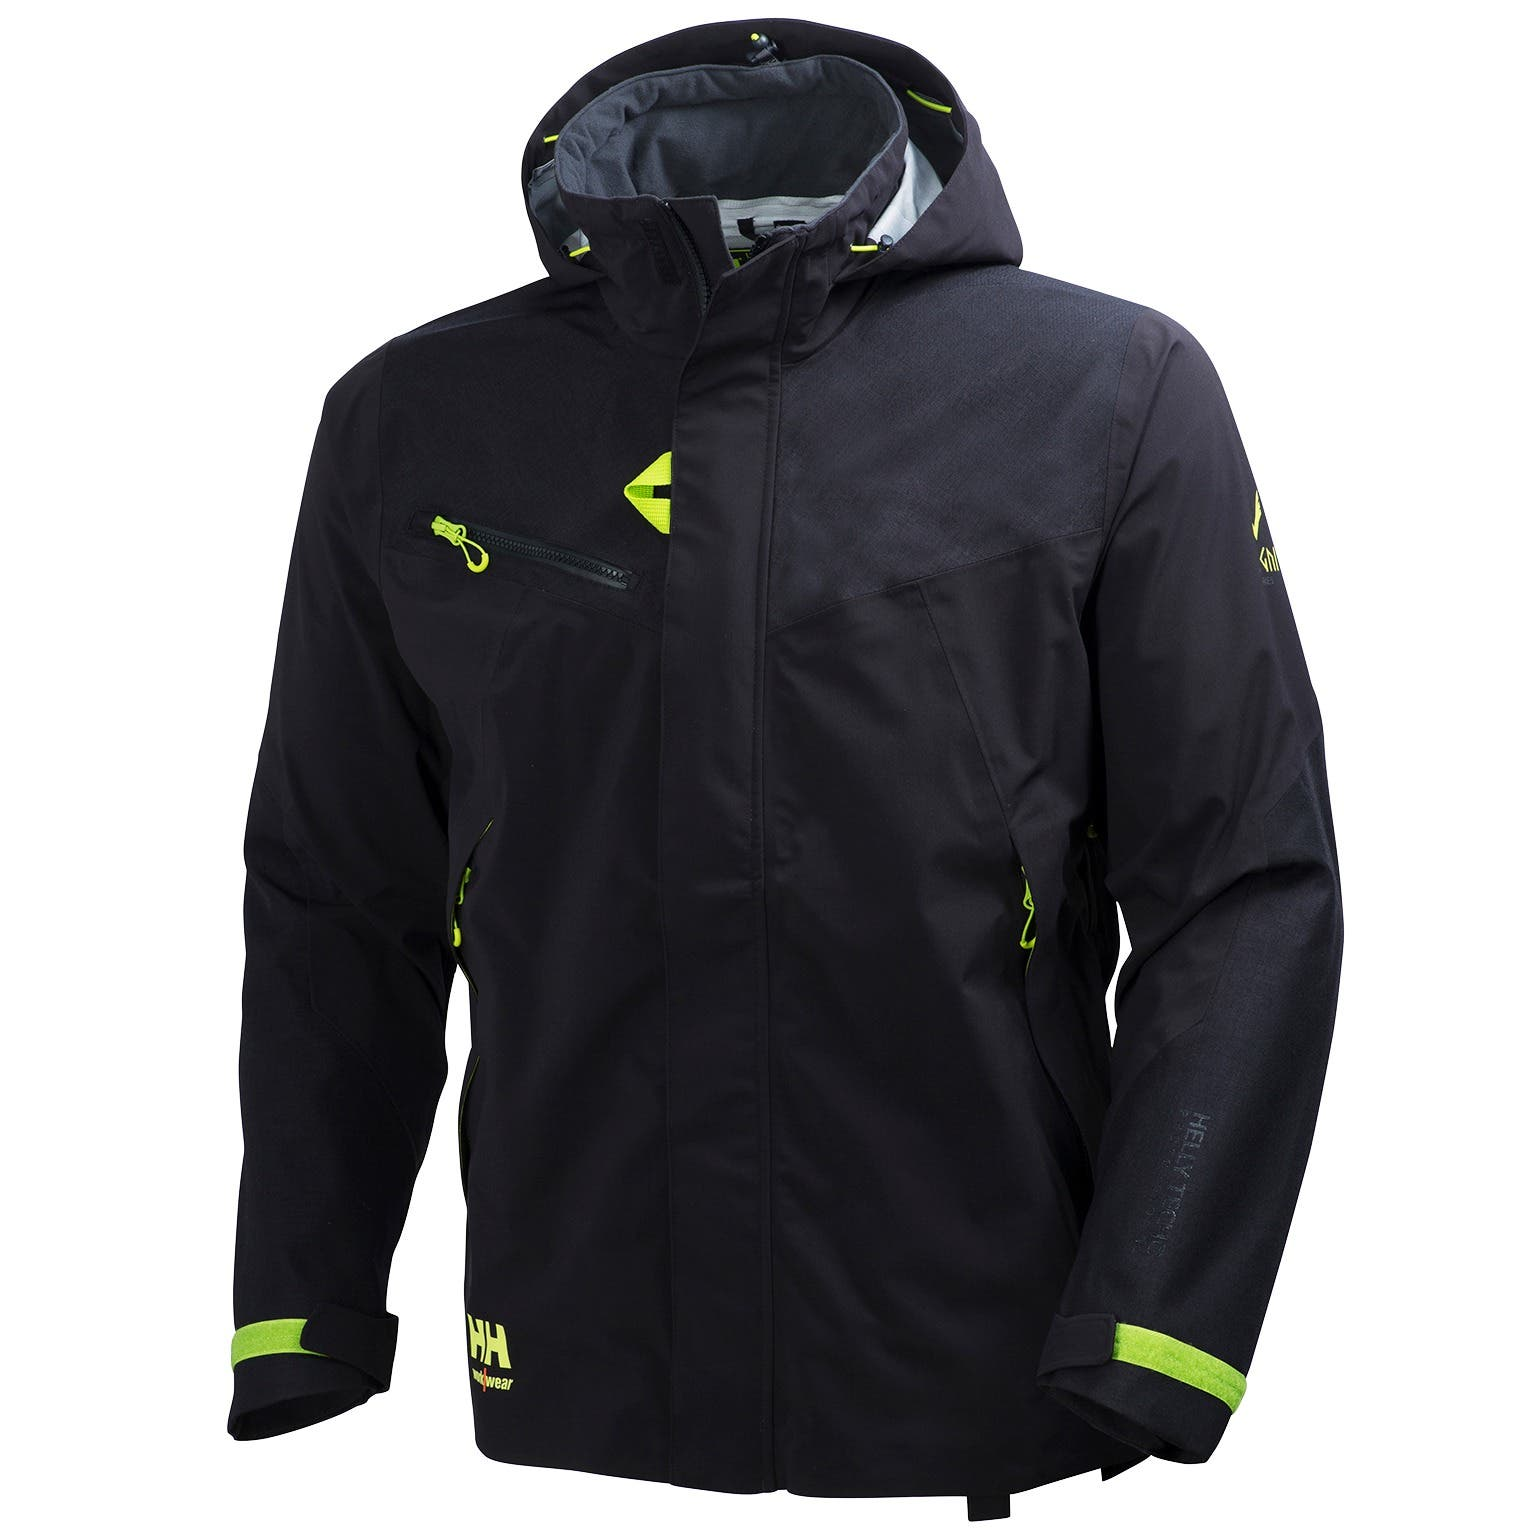 HELLY HANSON MAGNI 3 LAYER SHELL